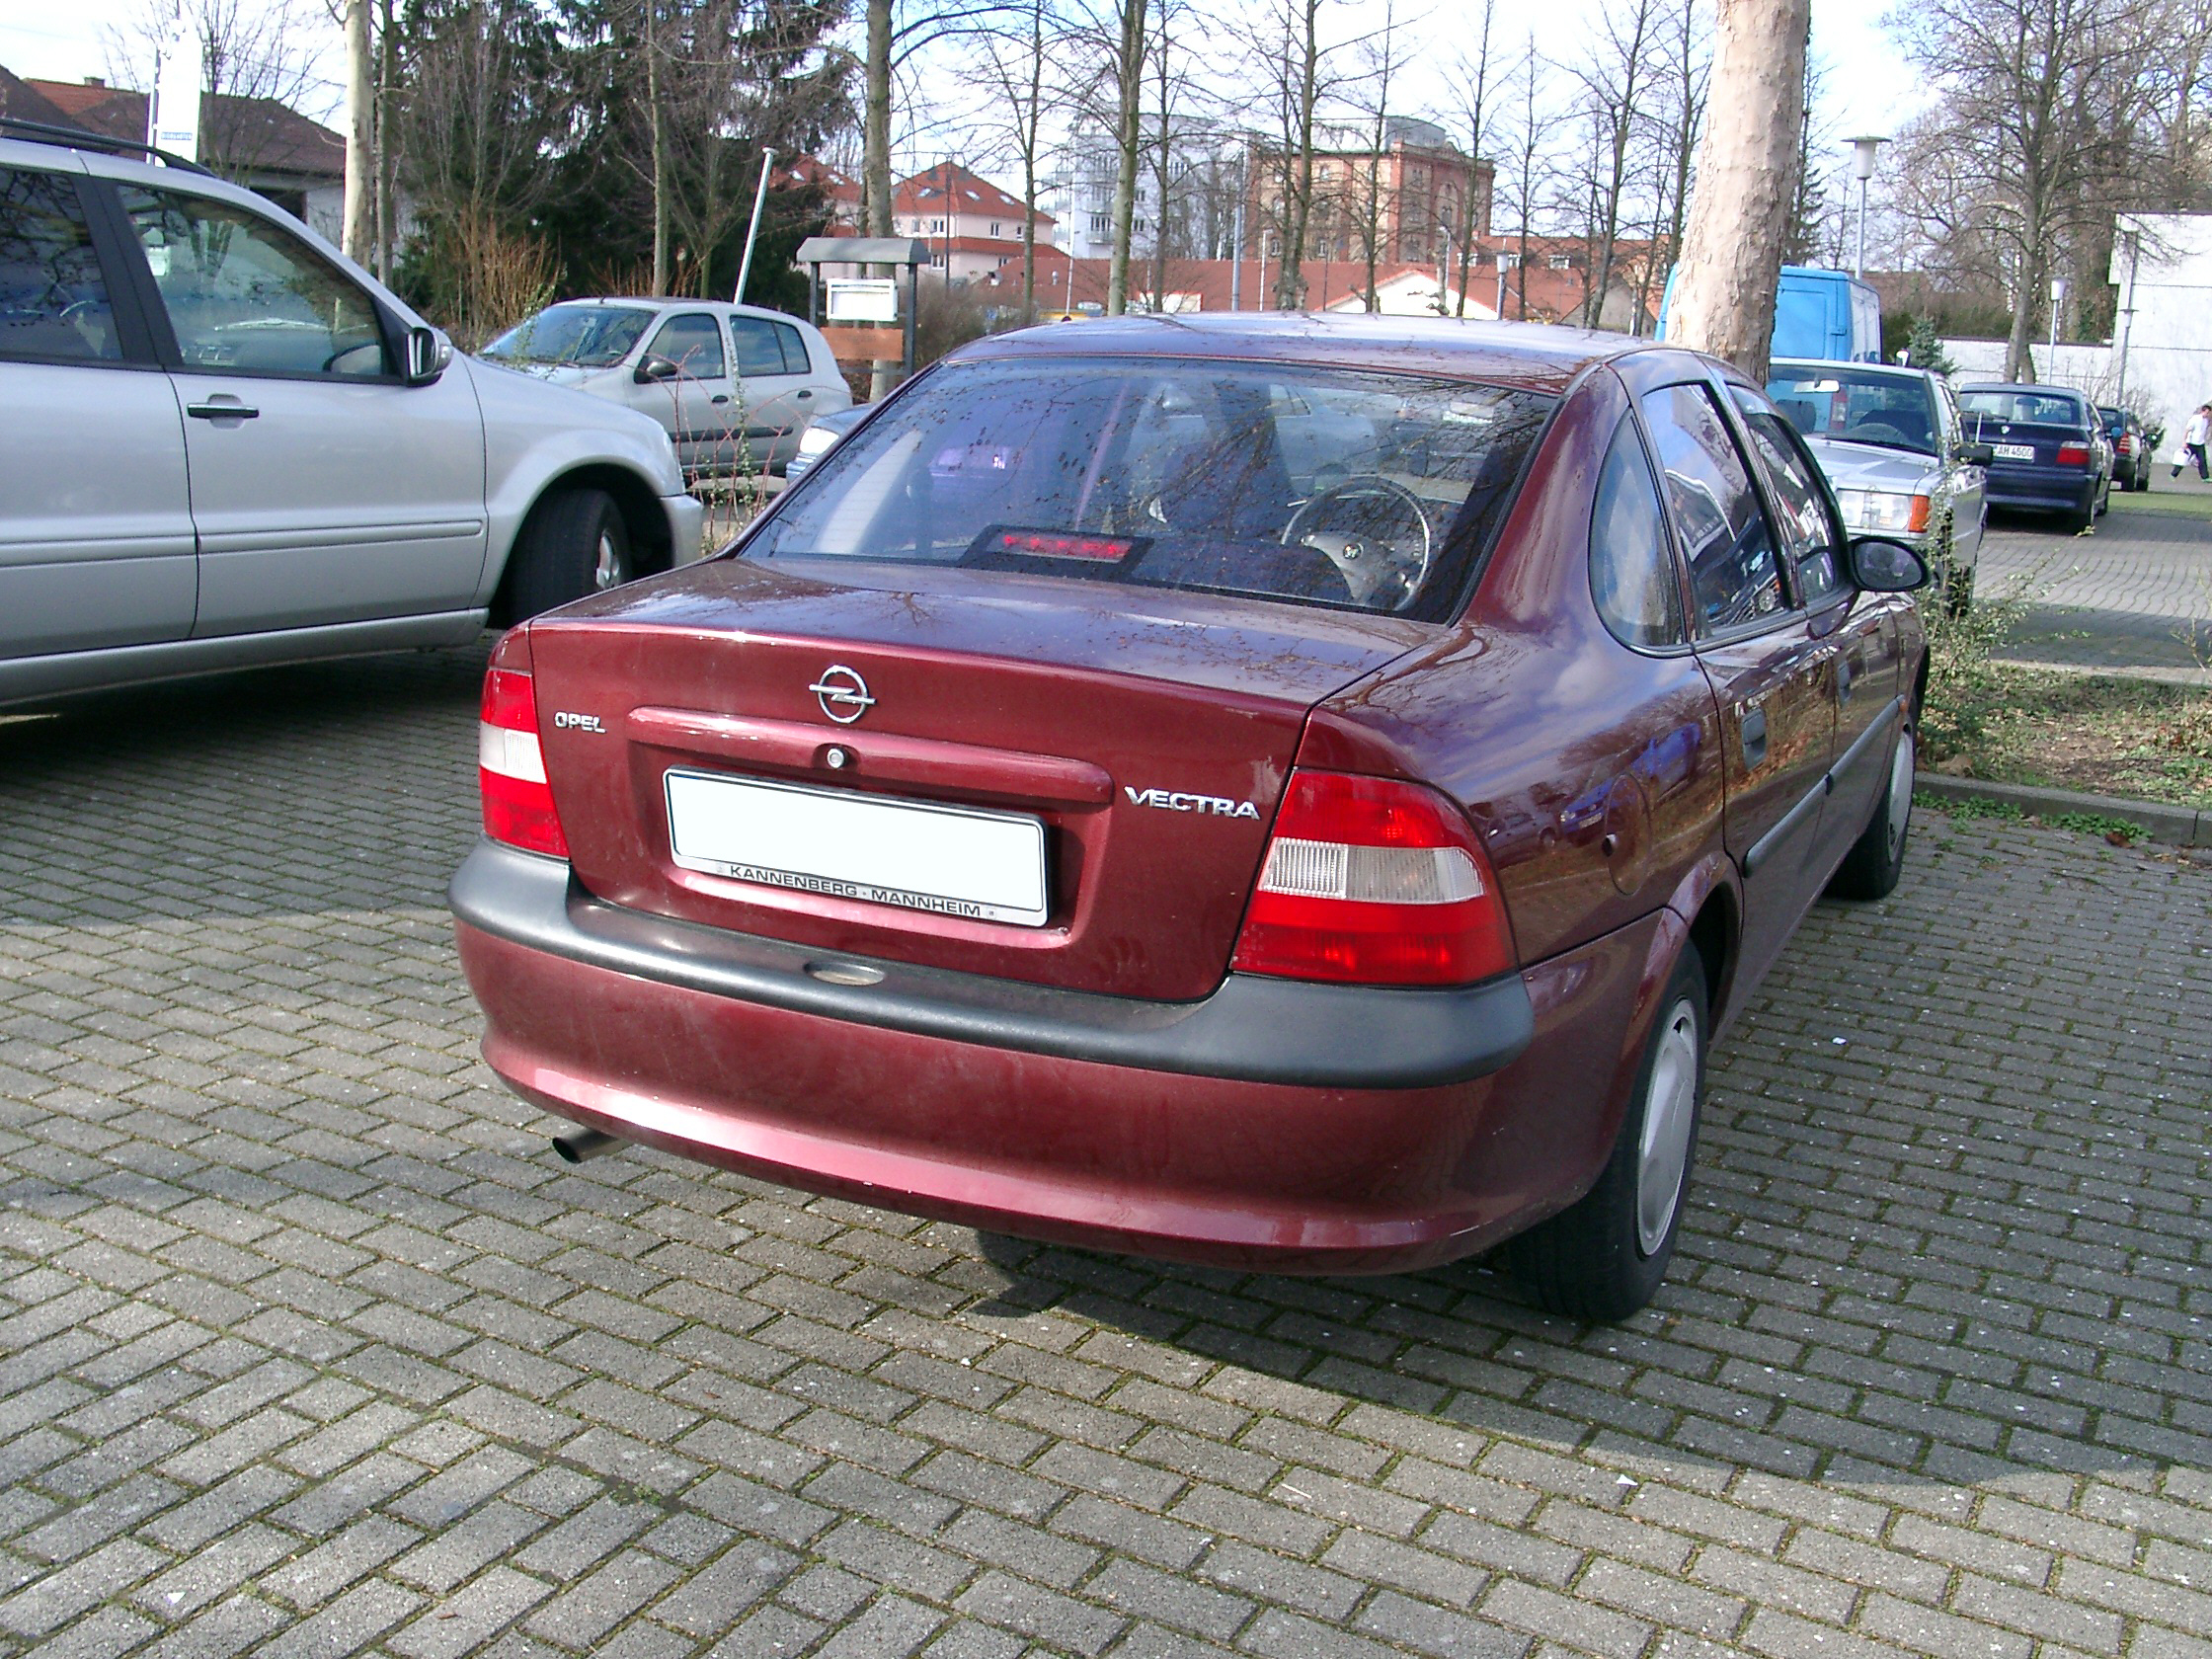 File:Opel Vectra B rear.jpg - Wikimedia Commons